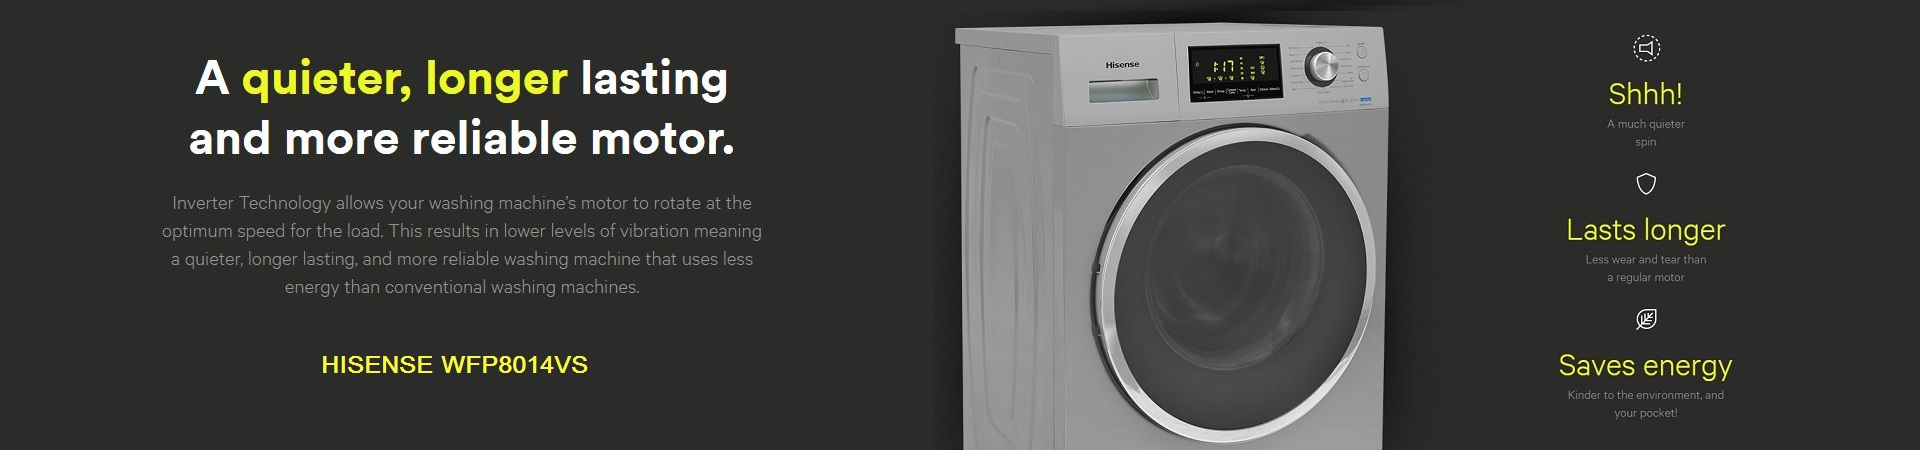 Nottingham Washing Machine Fridge Cooker Dishwasher Sale Or Repair Indesit Motor Wiring Diagram Oven And Services For The East Midlands